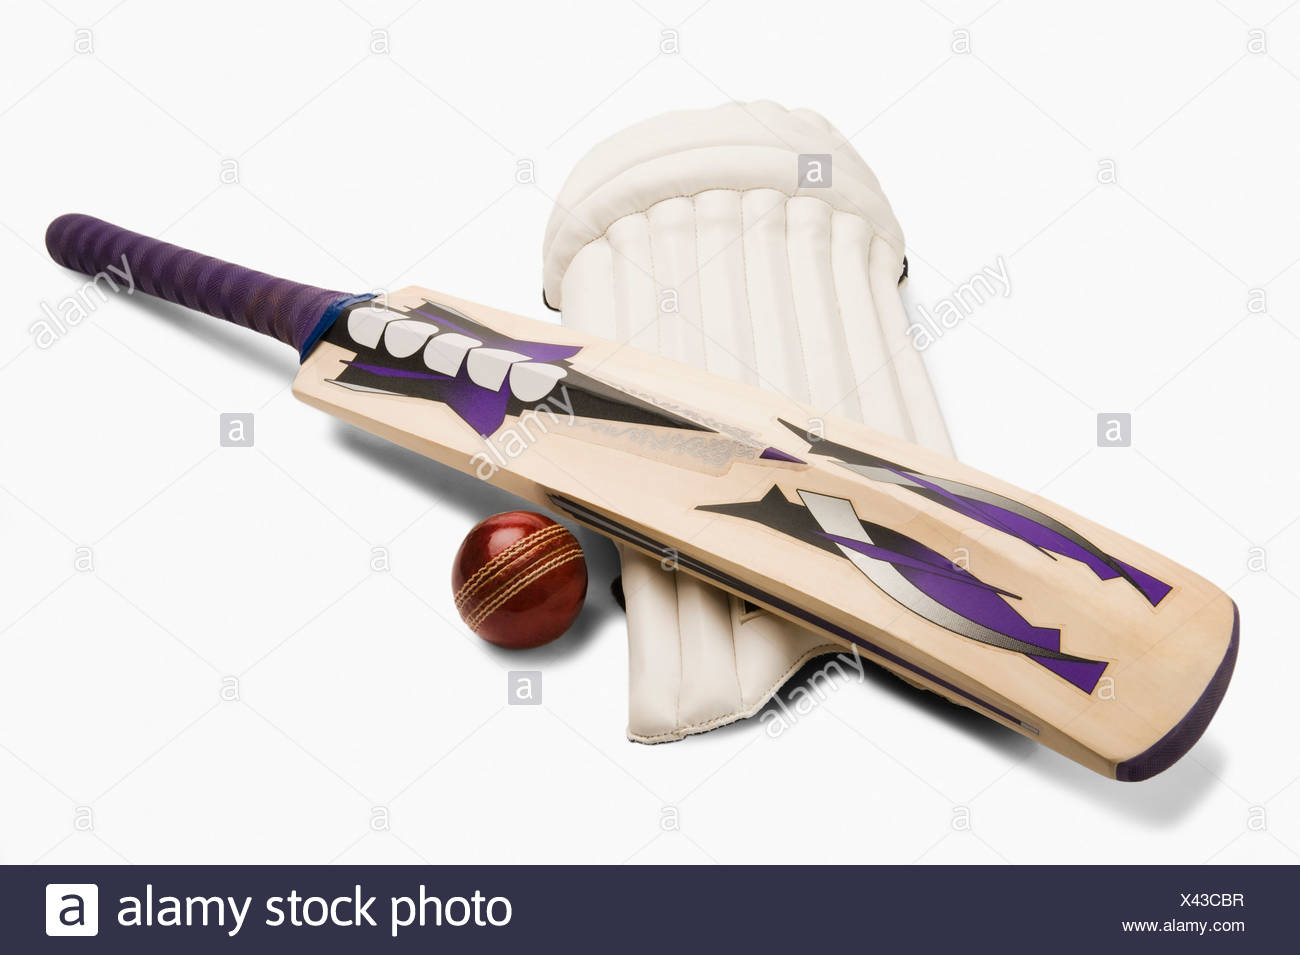 Close-up of cricket equipment - Stock Image